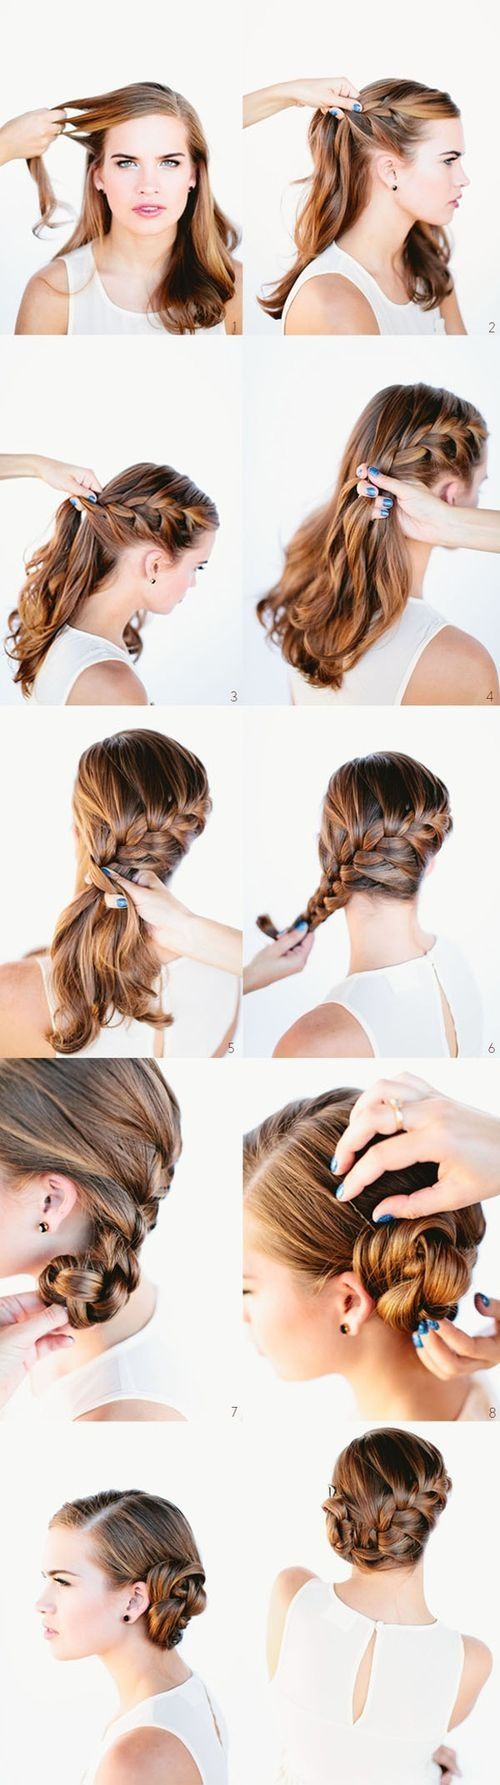 #hairstyle #hairdo #curls #tutorial #howto #DIY #inspiration